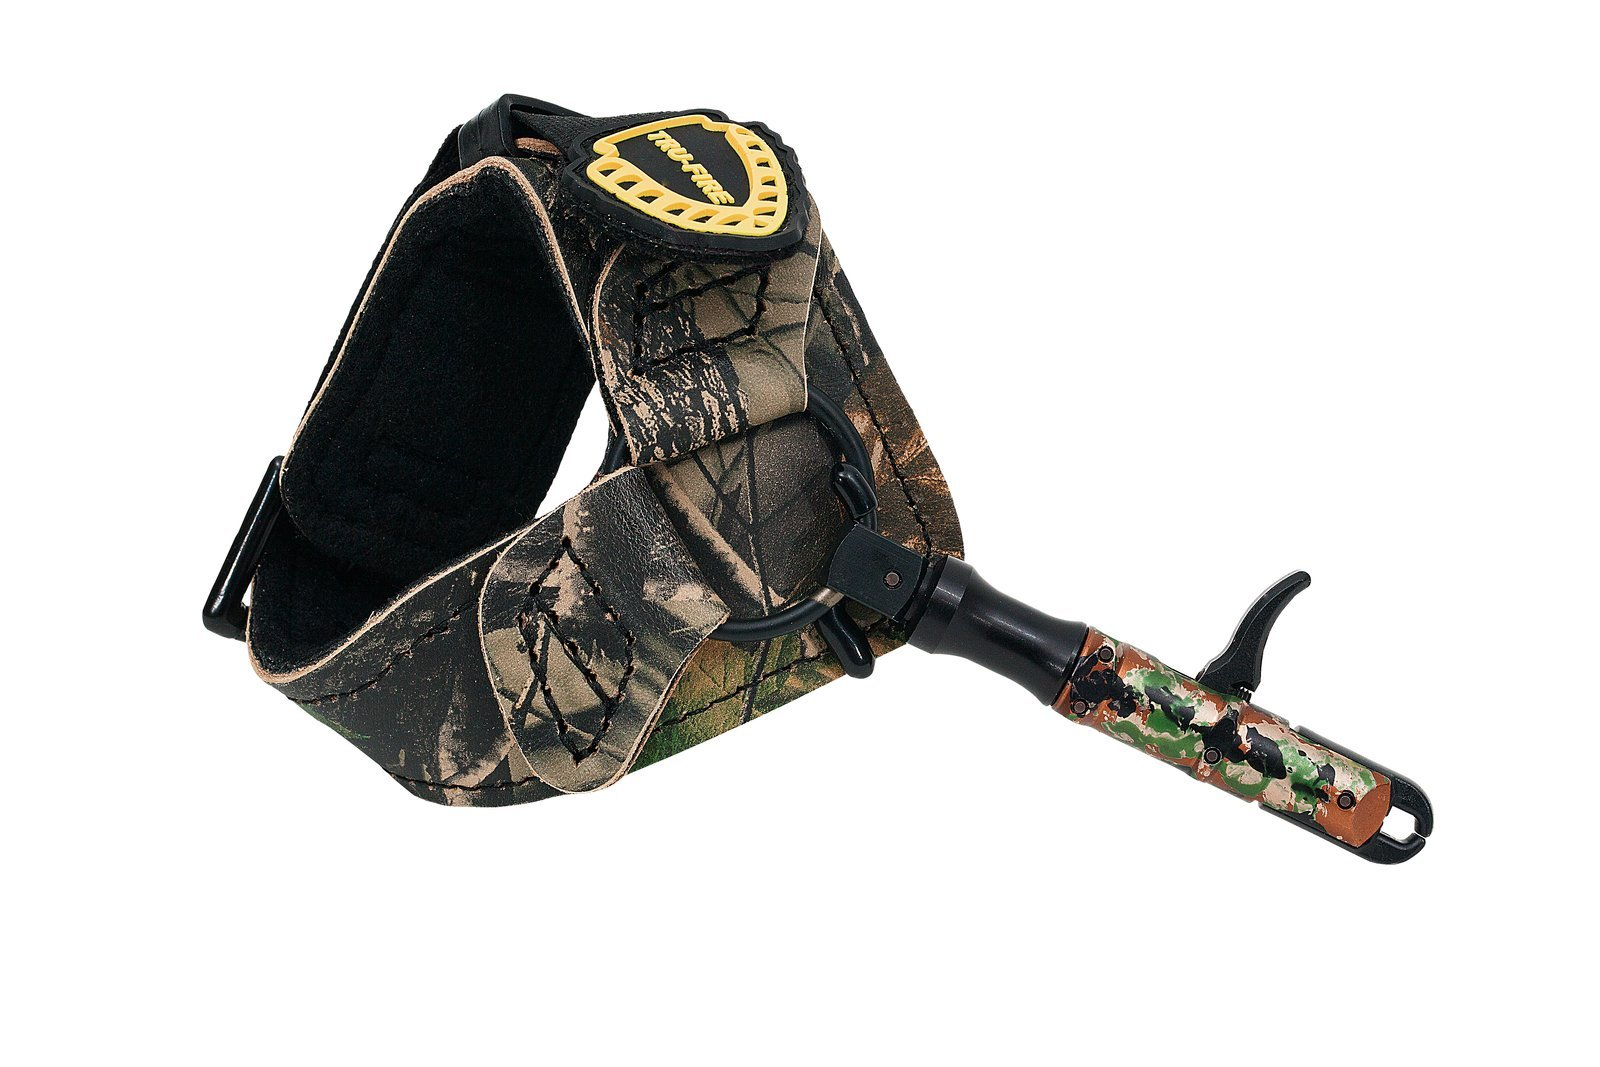 TruFire Edge Buckle Foldback Youth Archery Compound Bow Release - Adjustable Camo Strap for Smaller Wrists